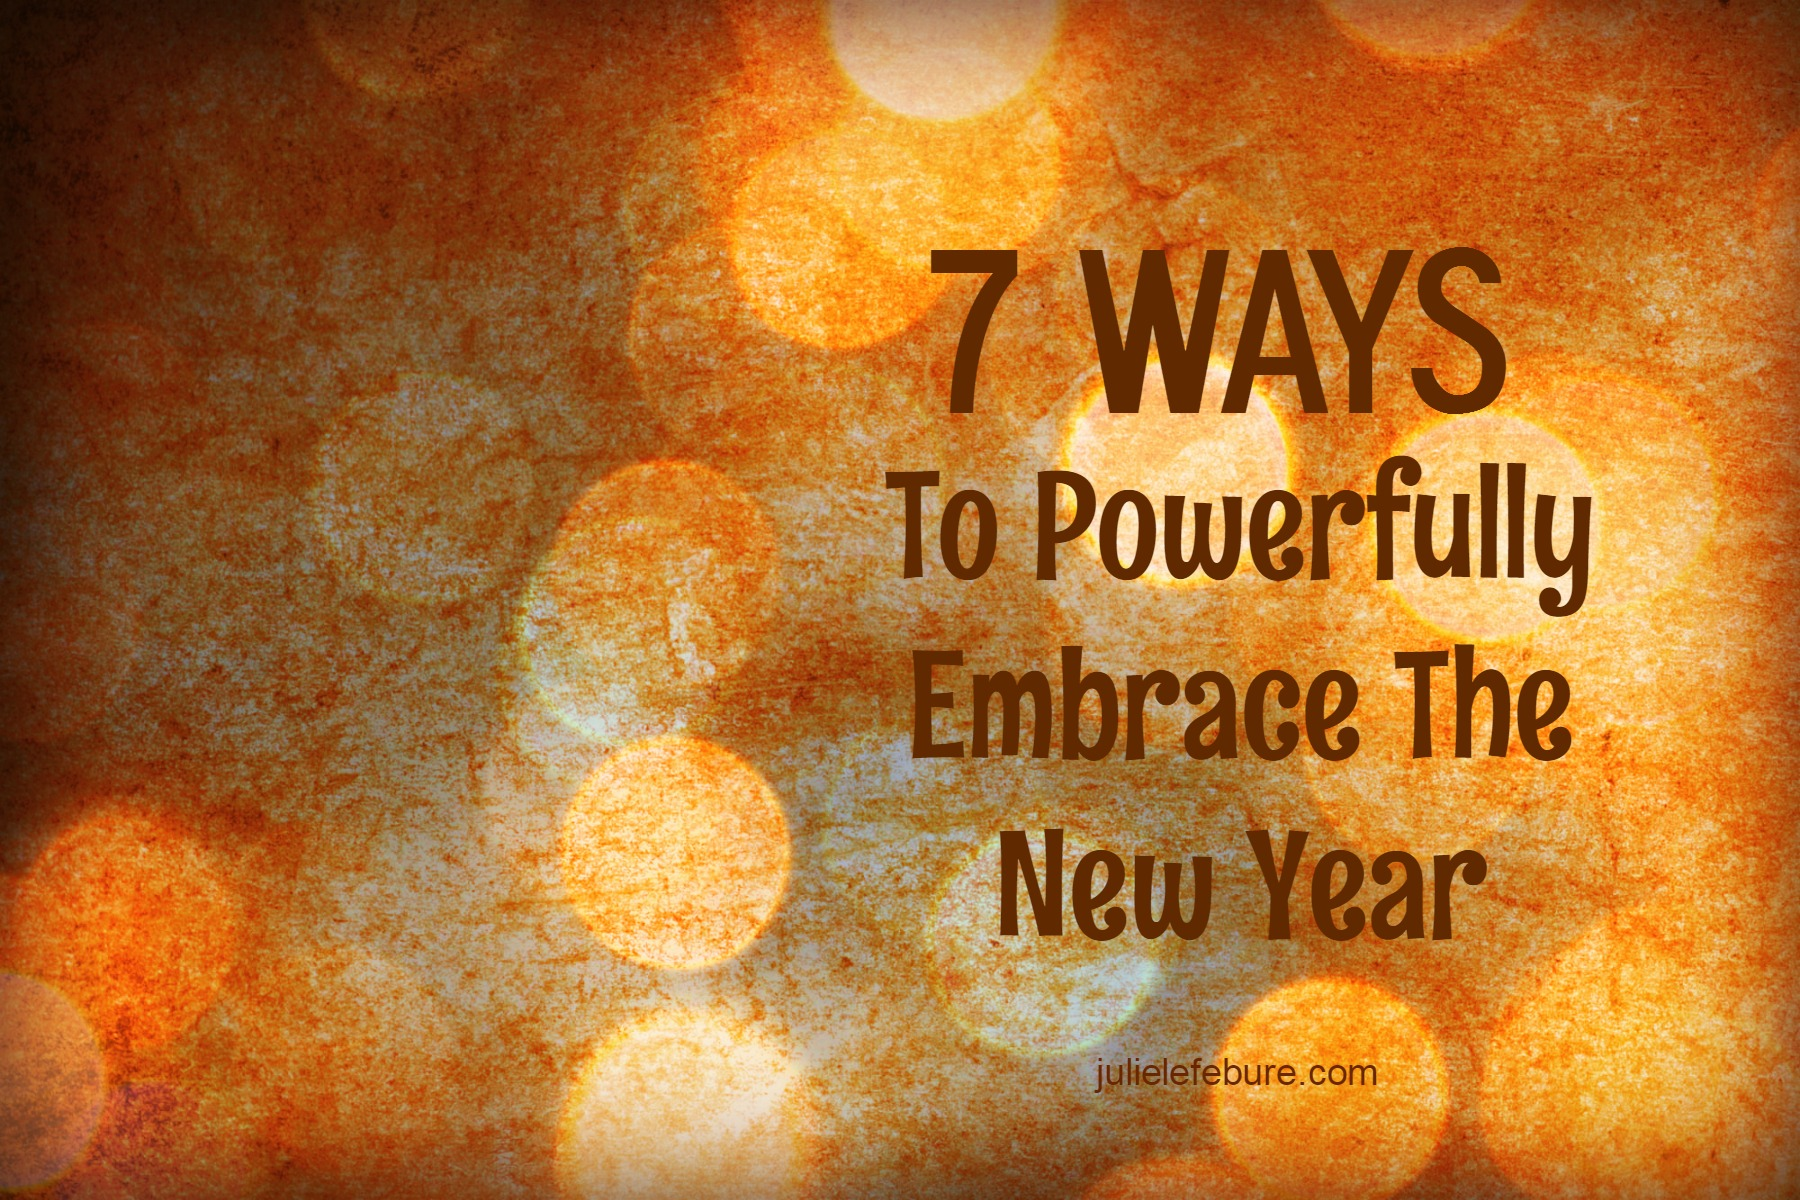 7 Ways To Powerfully Embrace The New Year